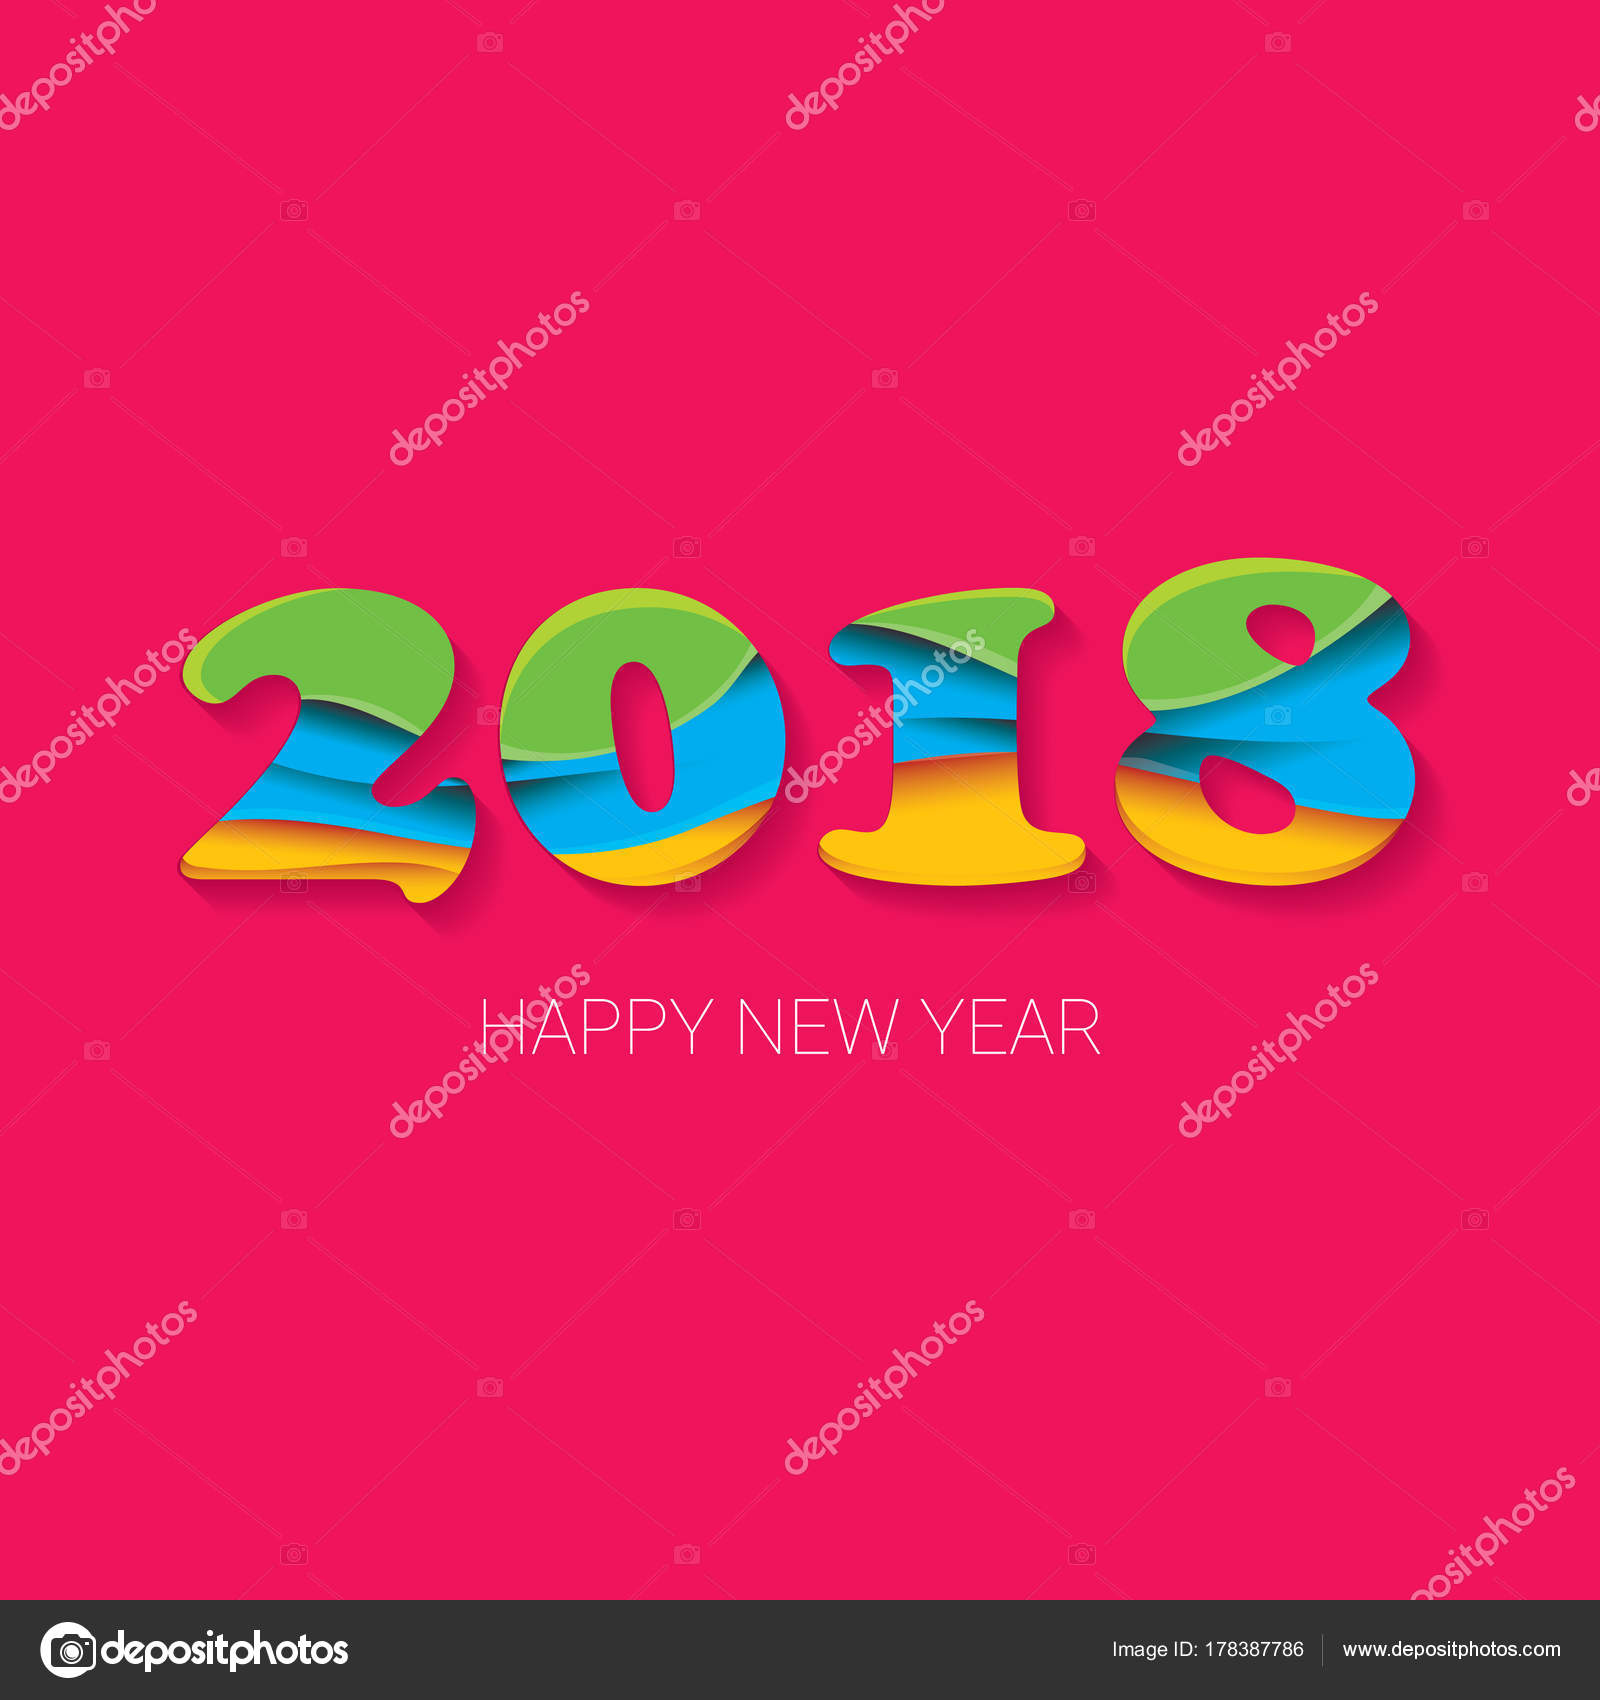 Creative greetings text choice image greeting card examples 2018 happy new year creative design numbers and greeting text 2018 happy new year creative design kristyandbryce Choice Image